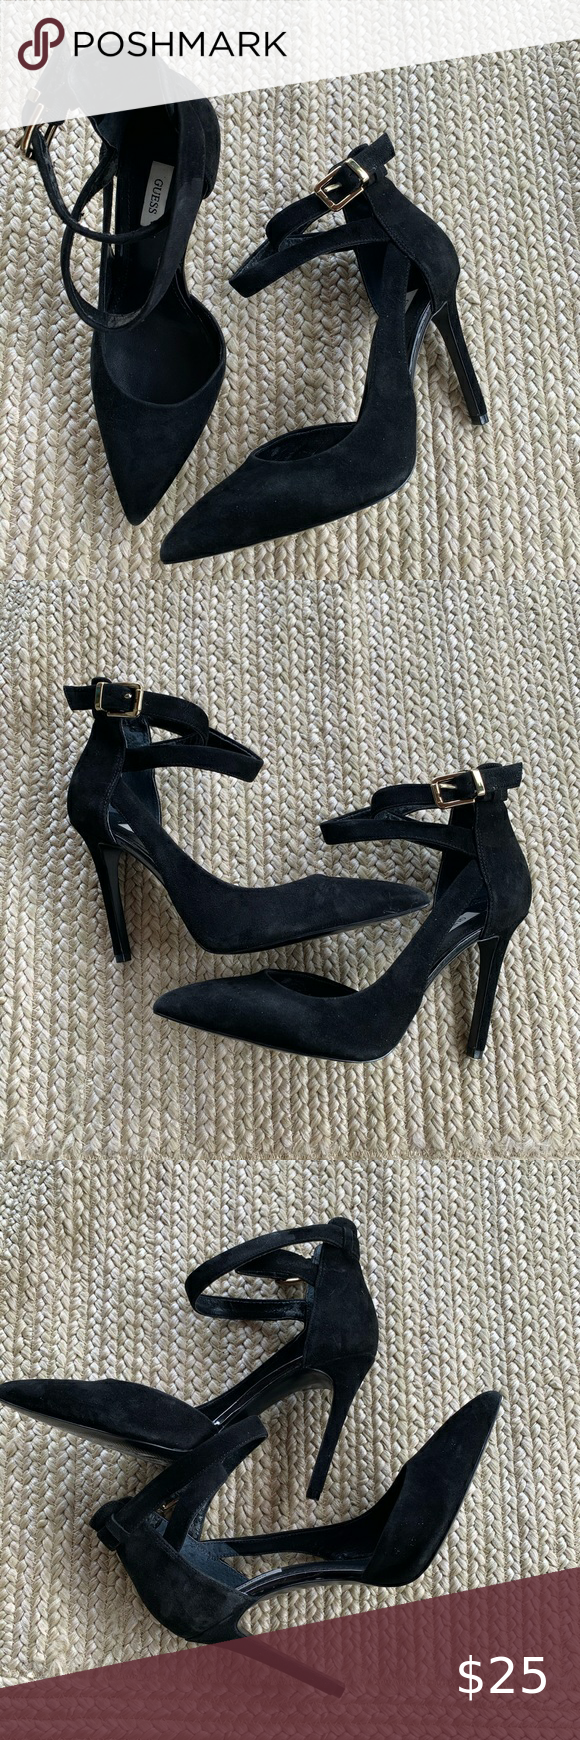 Guess black suede pointed toe pumps